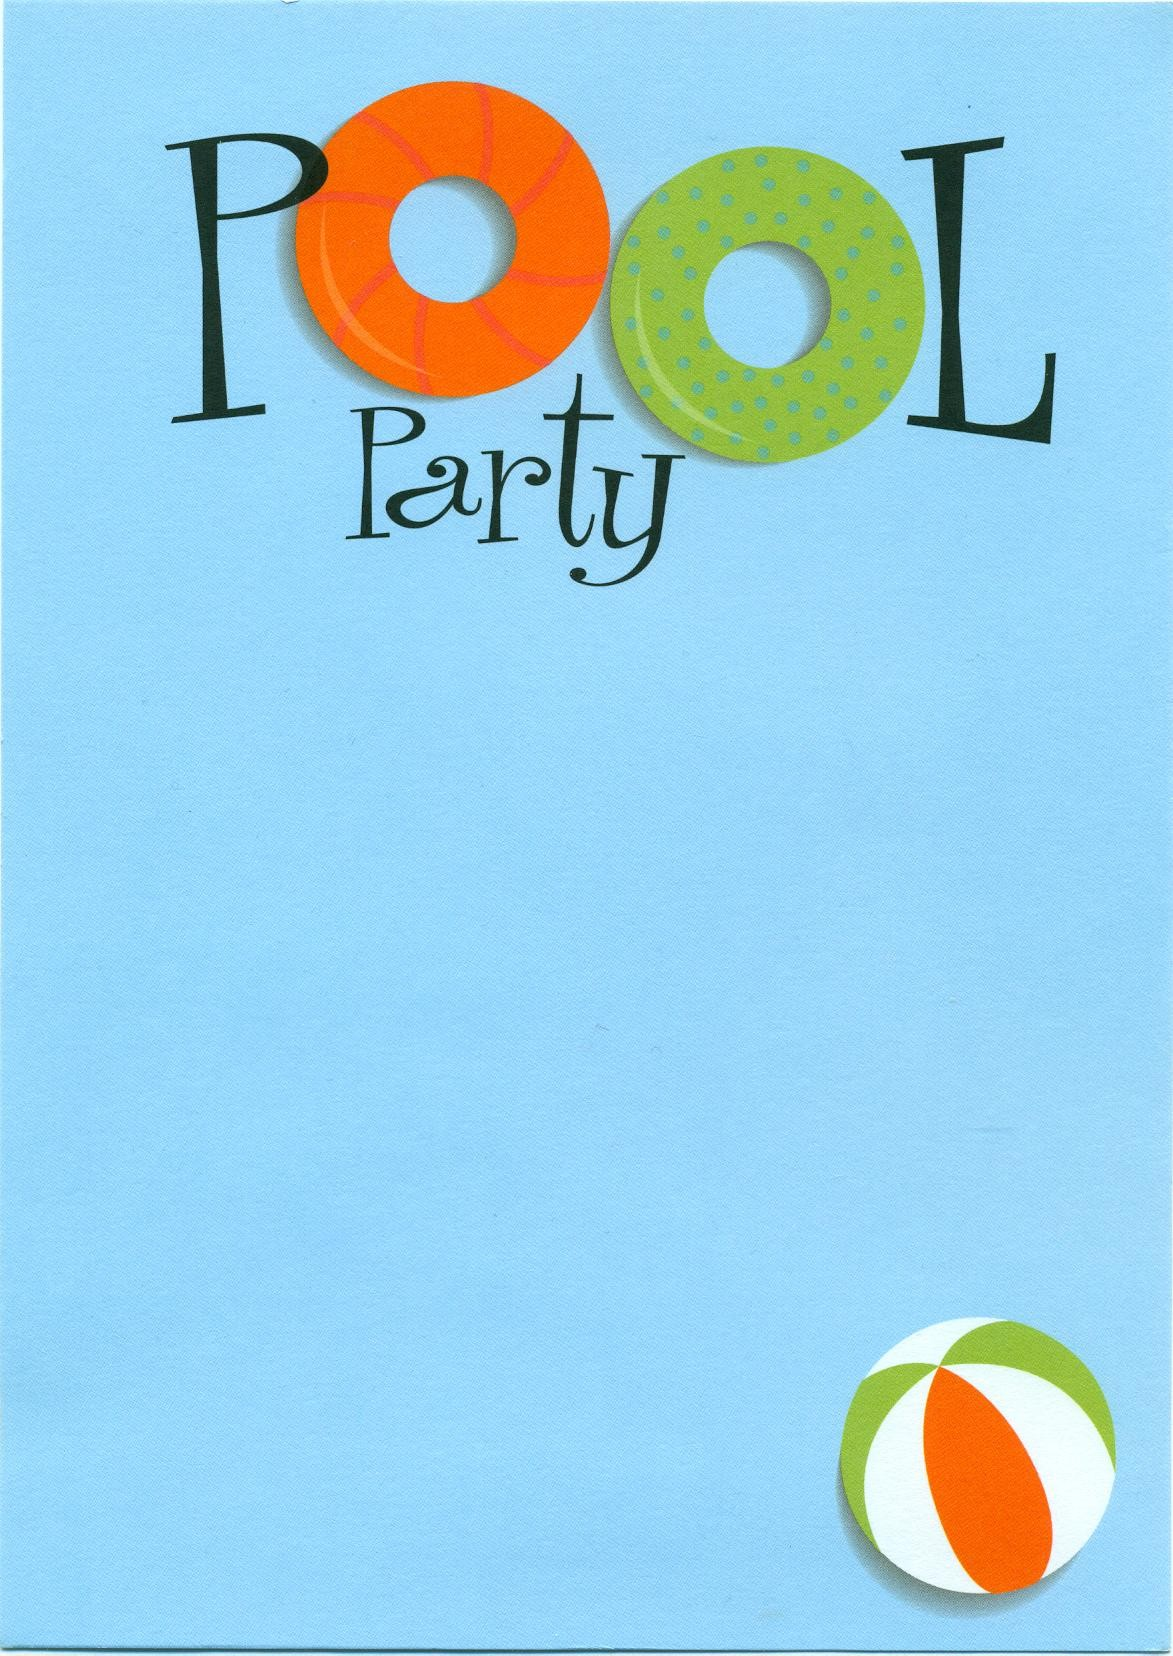 Pool Party Invitations Clip Art free image.